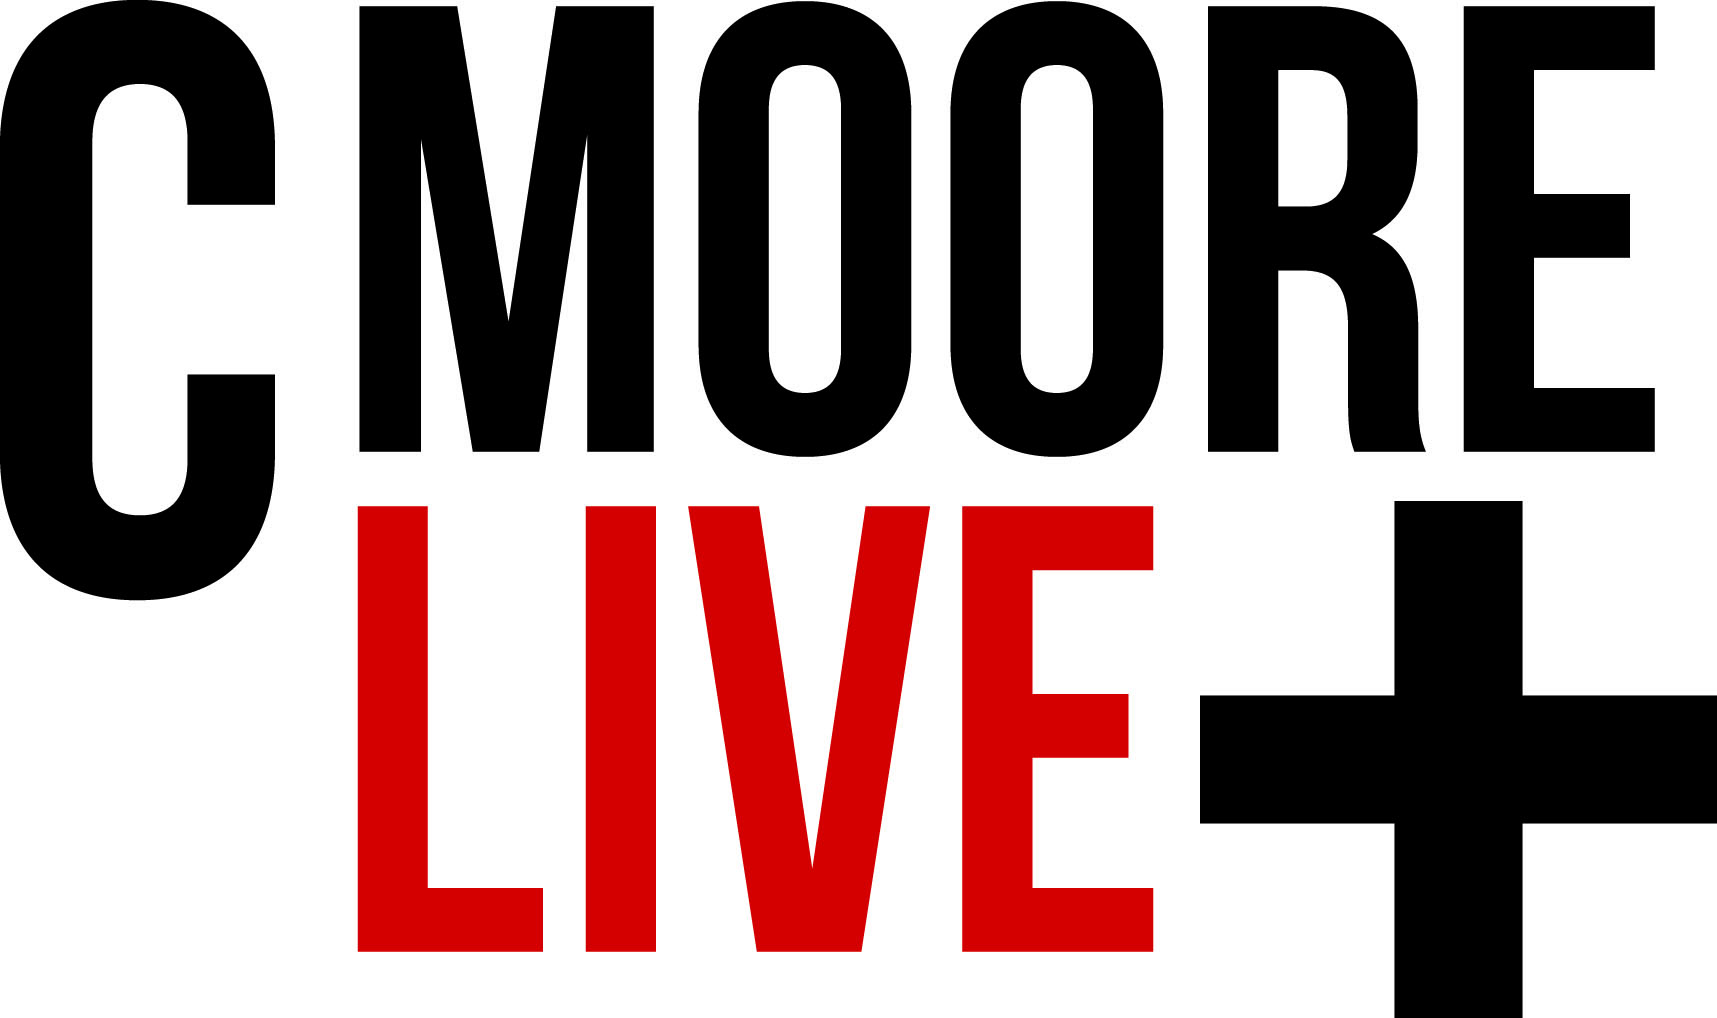 CMoore Live